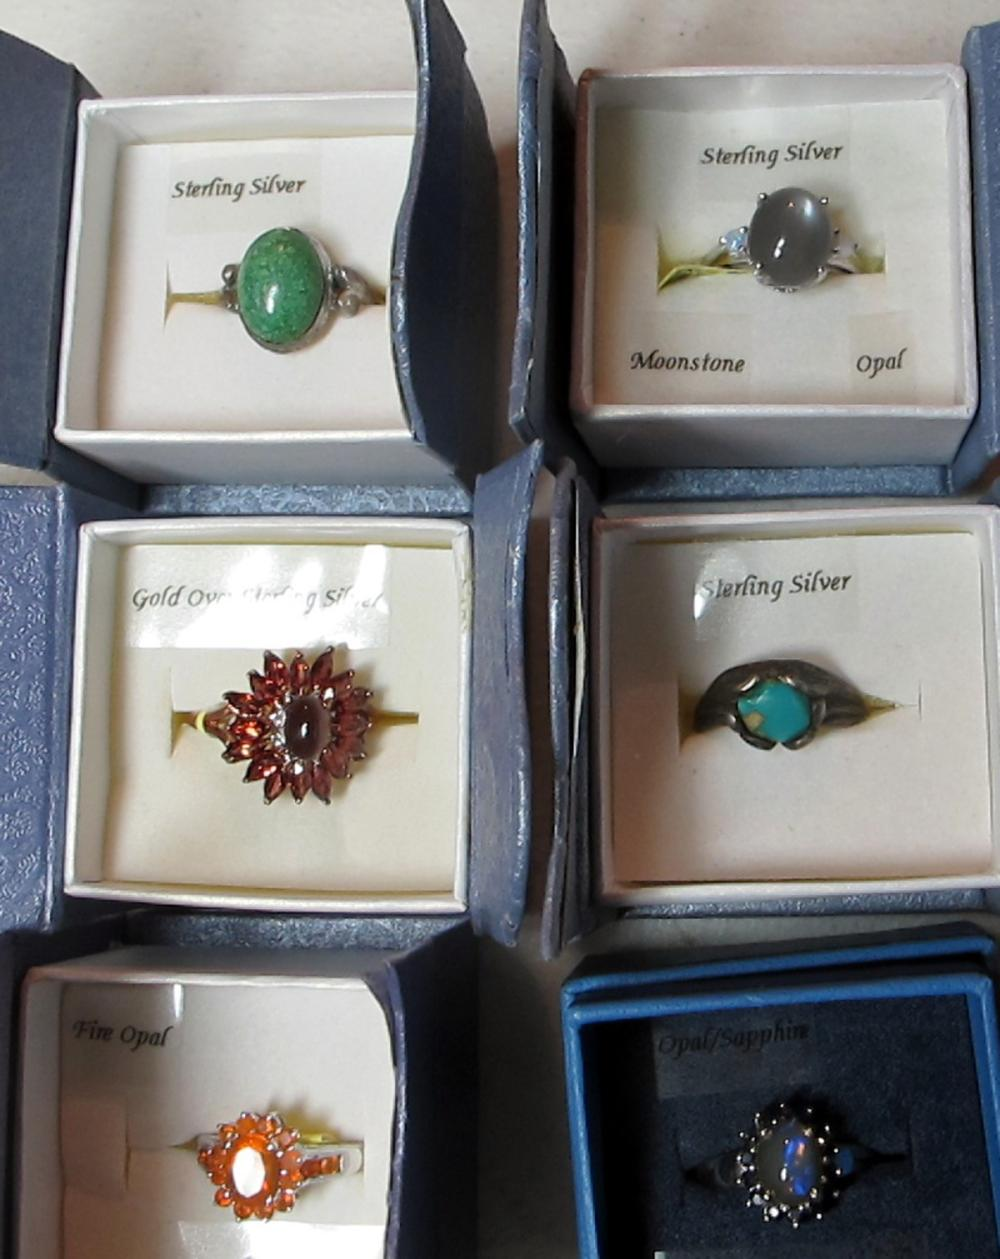 Lot 44: 8 PC BOXED STERLING SILVER RINGS GEMSTONE TURQUOISE CABOCHON ETC